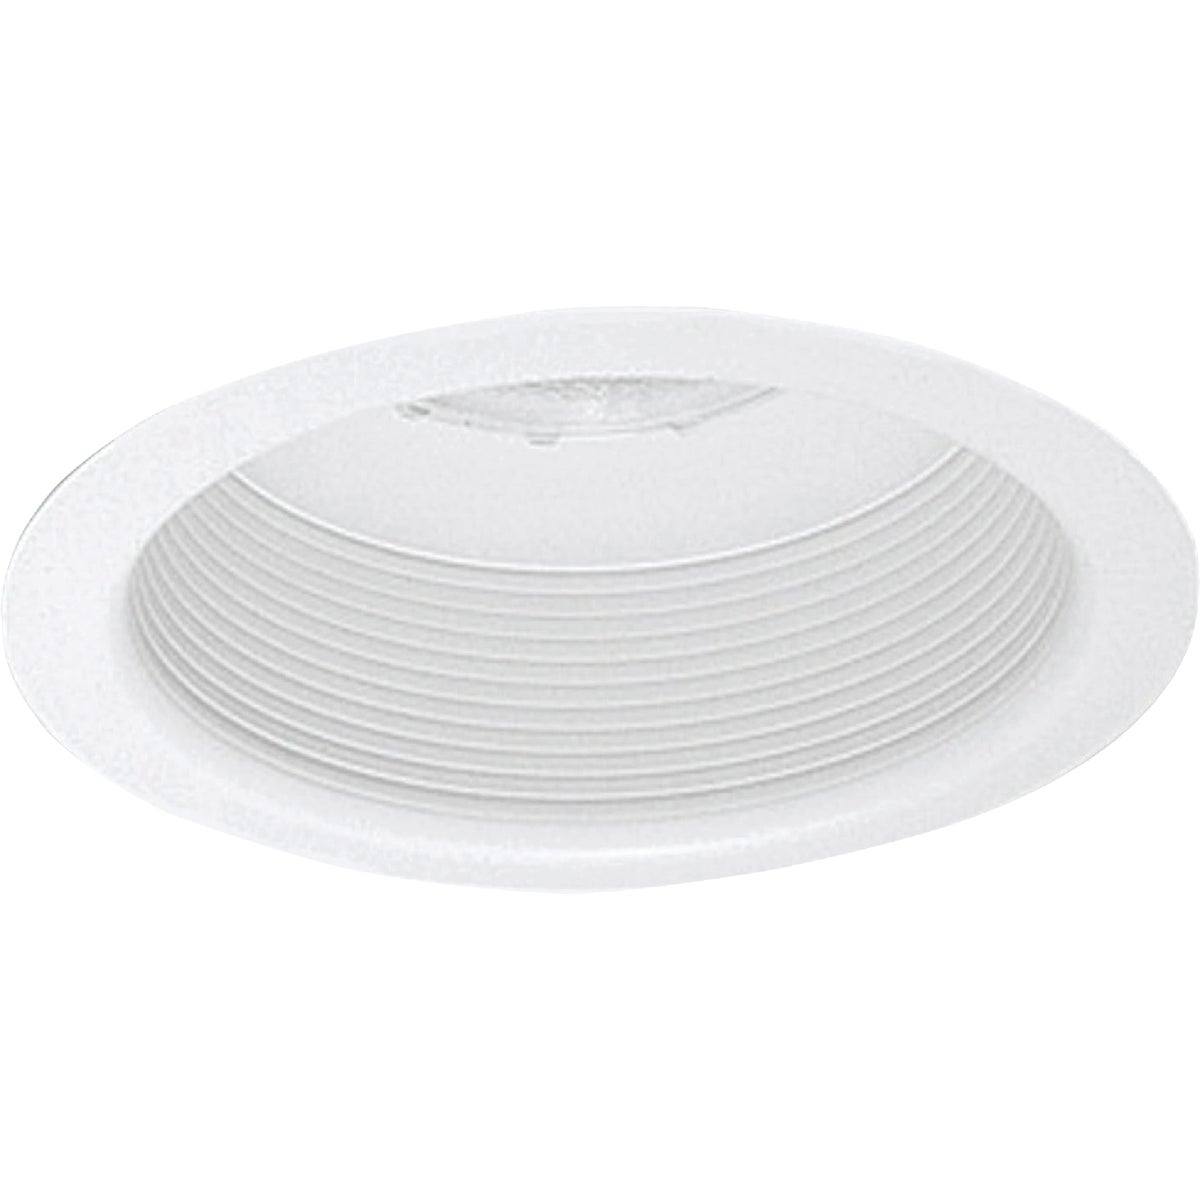 WHT RECESS FIXTURE TRIM - TRB30W by Philips Consumer Lum